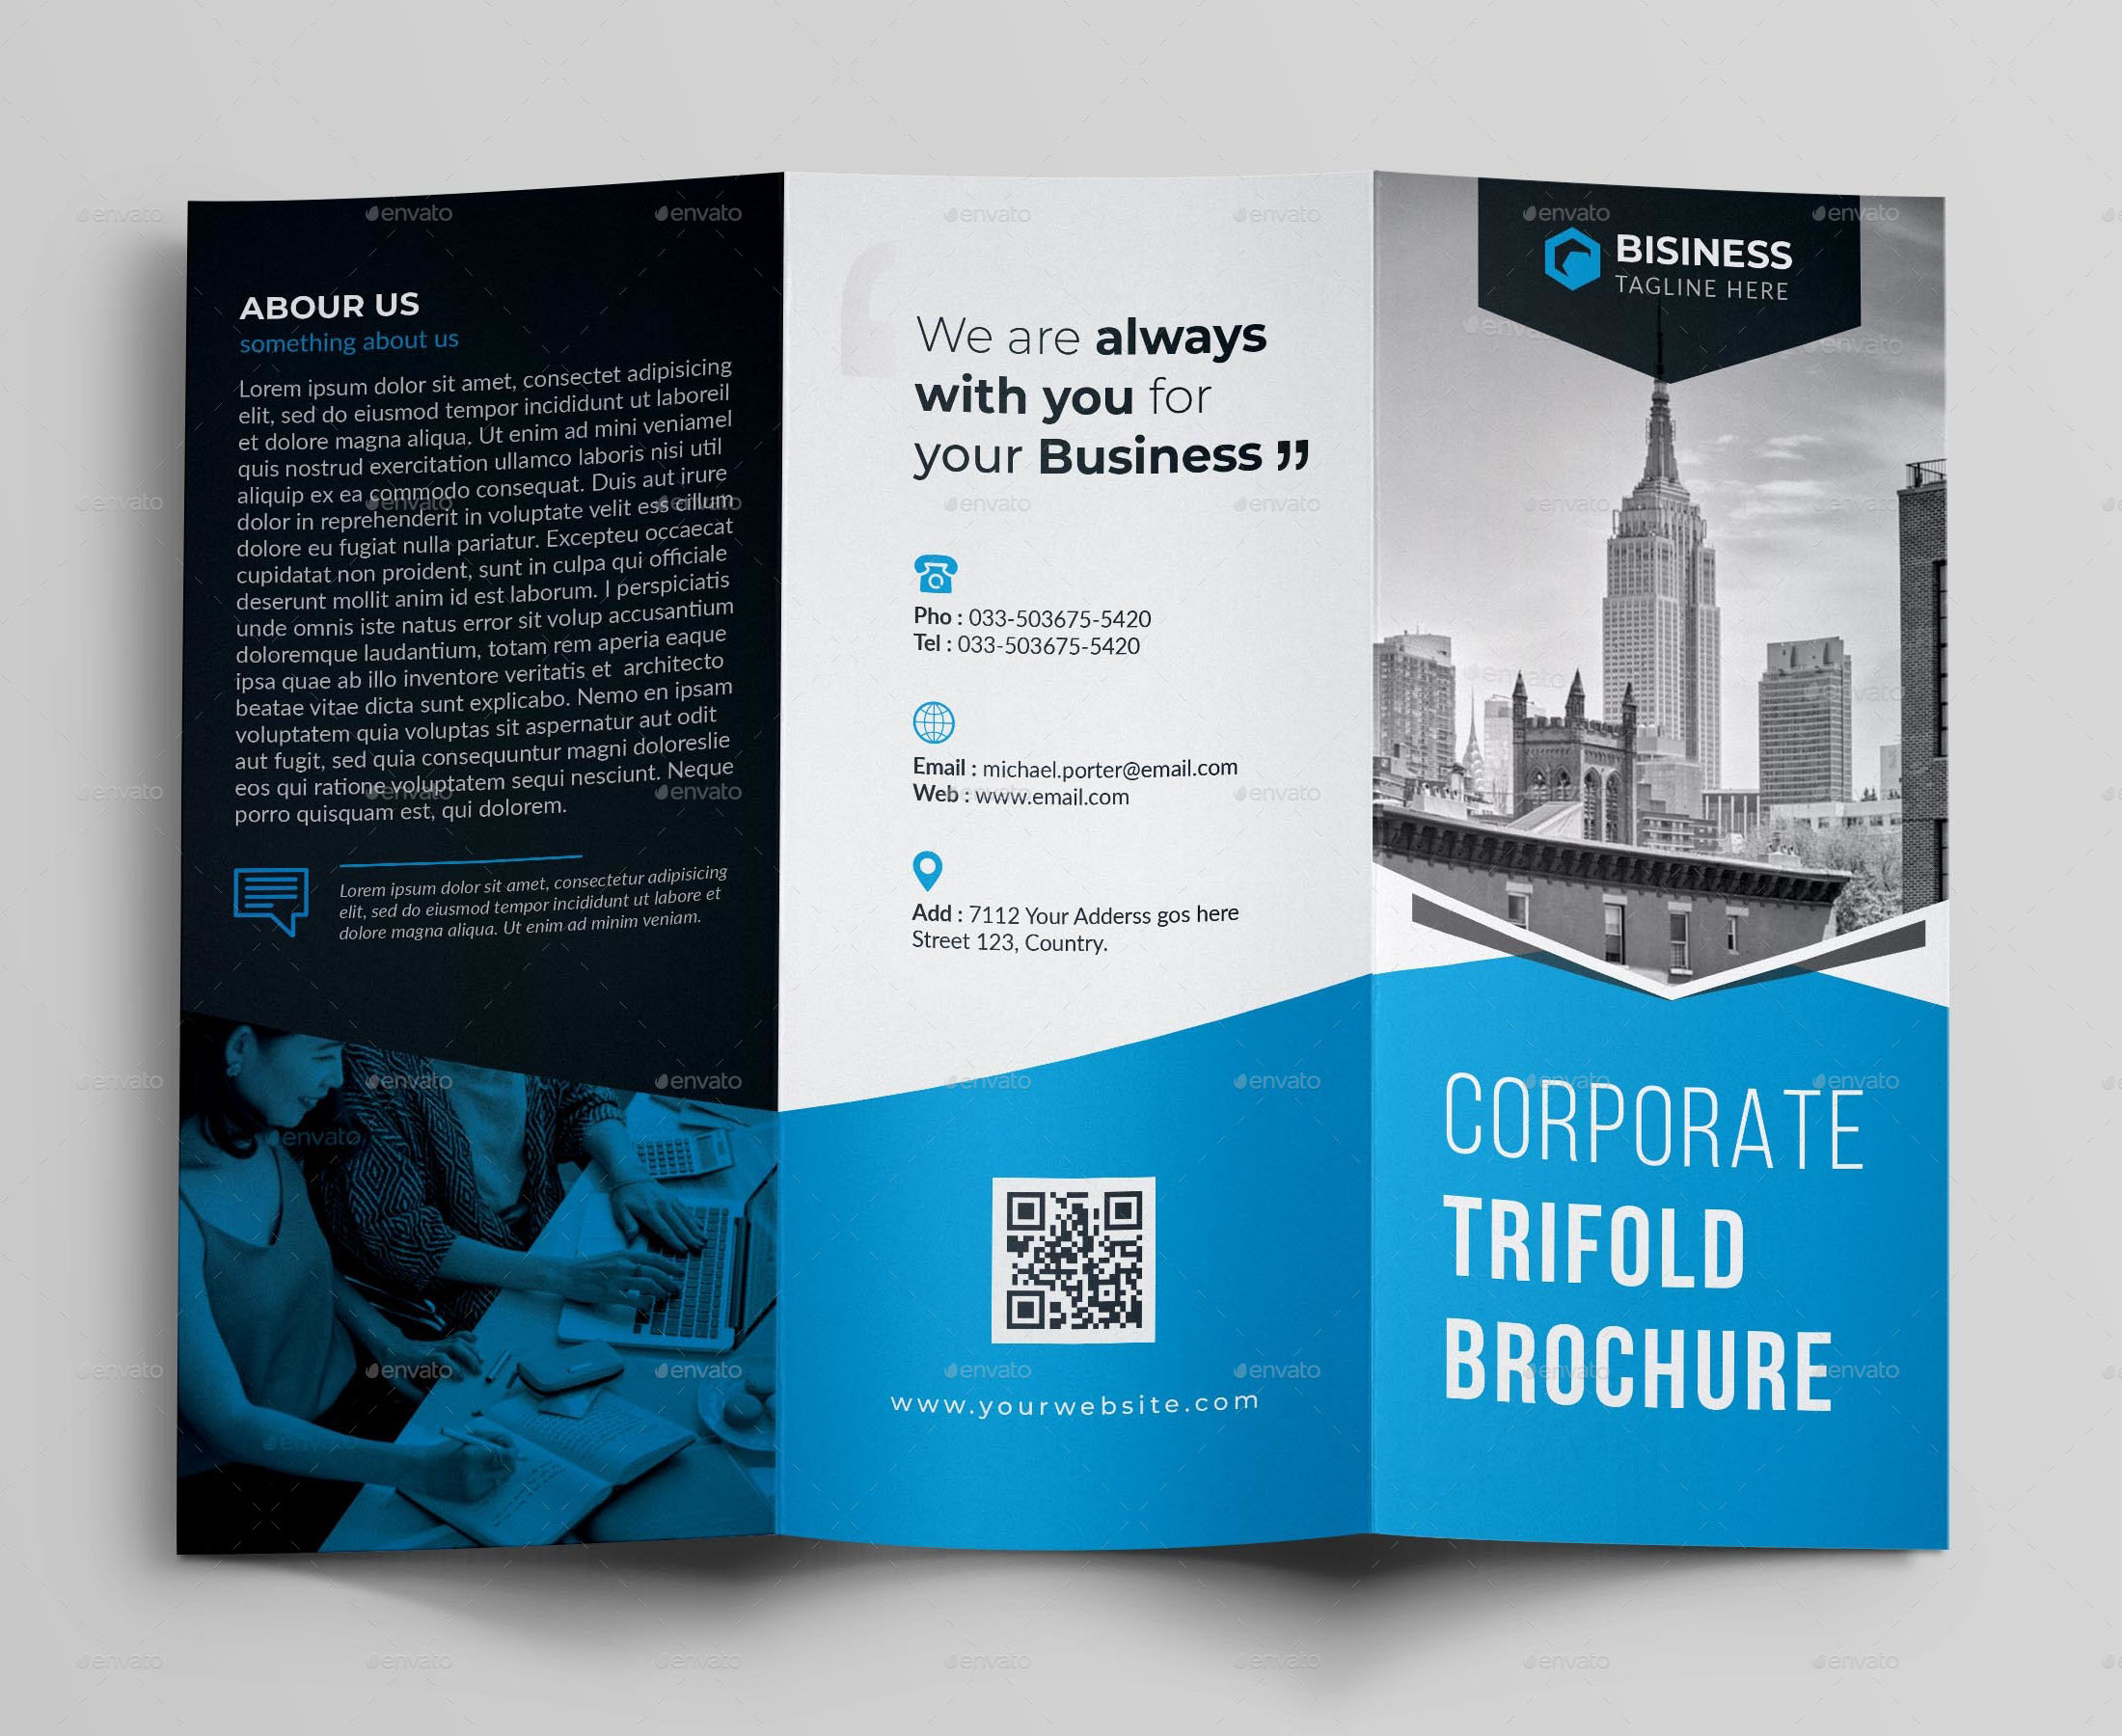 Brochure is an important attribute of any advertising campaign 71